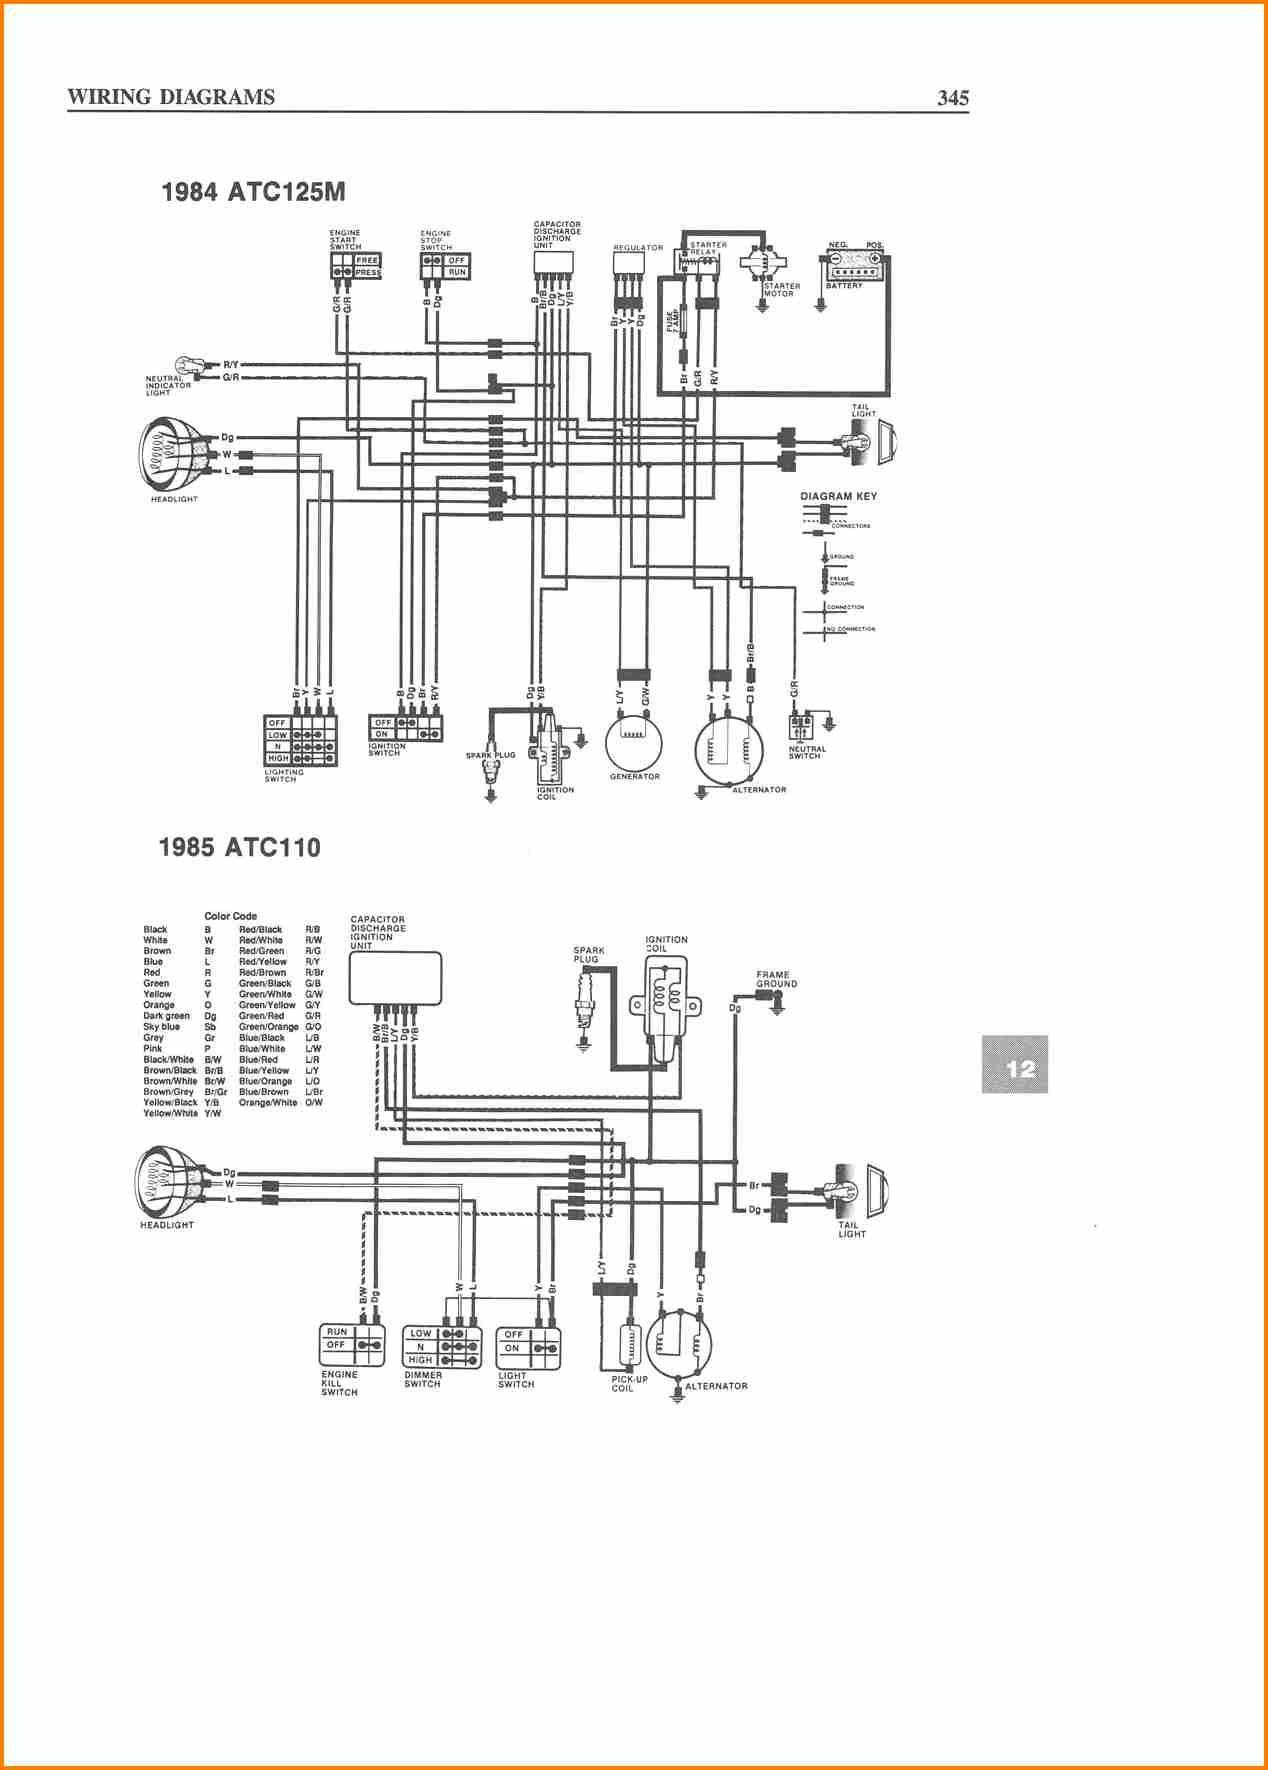 Chinese 4 Wheeler Wiring Diagram atv Wiring Diagram Wiring Diagram Of Chinese 4 Wheeler Wiring Diagram